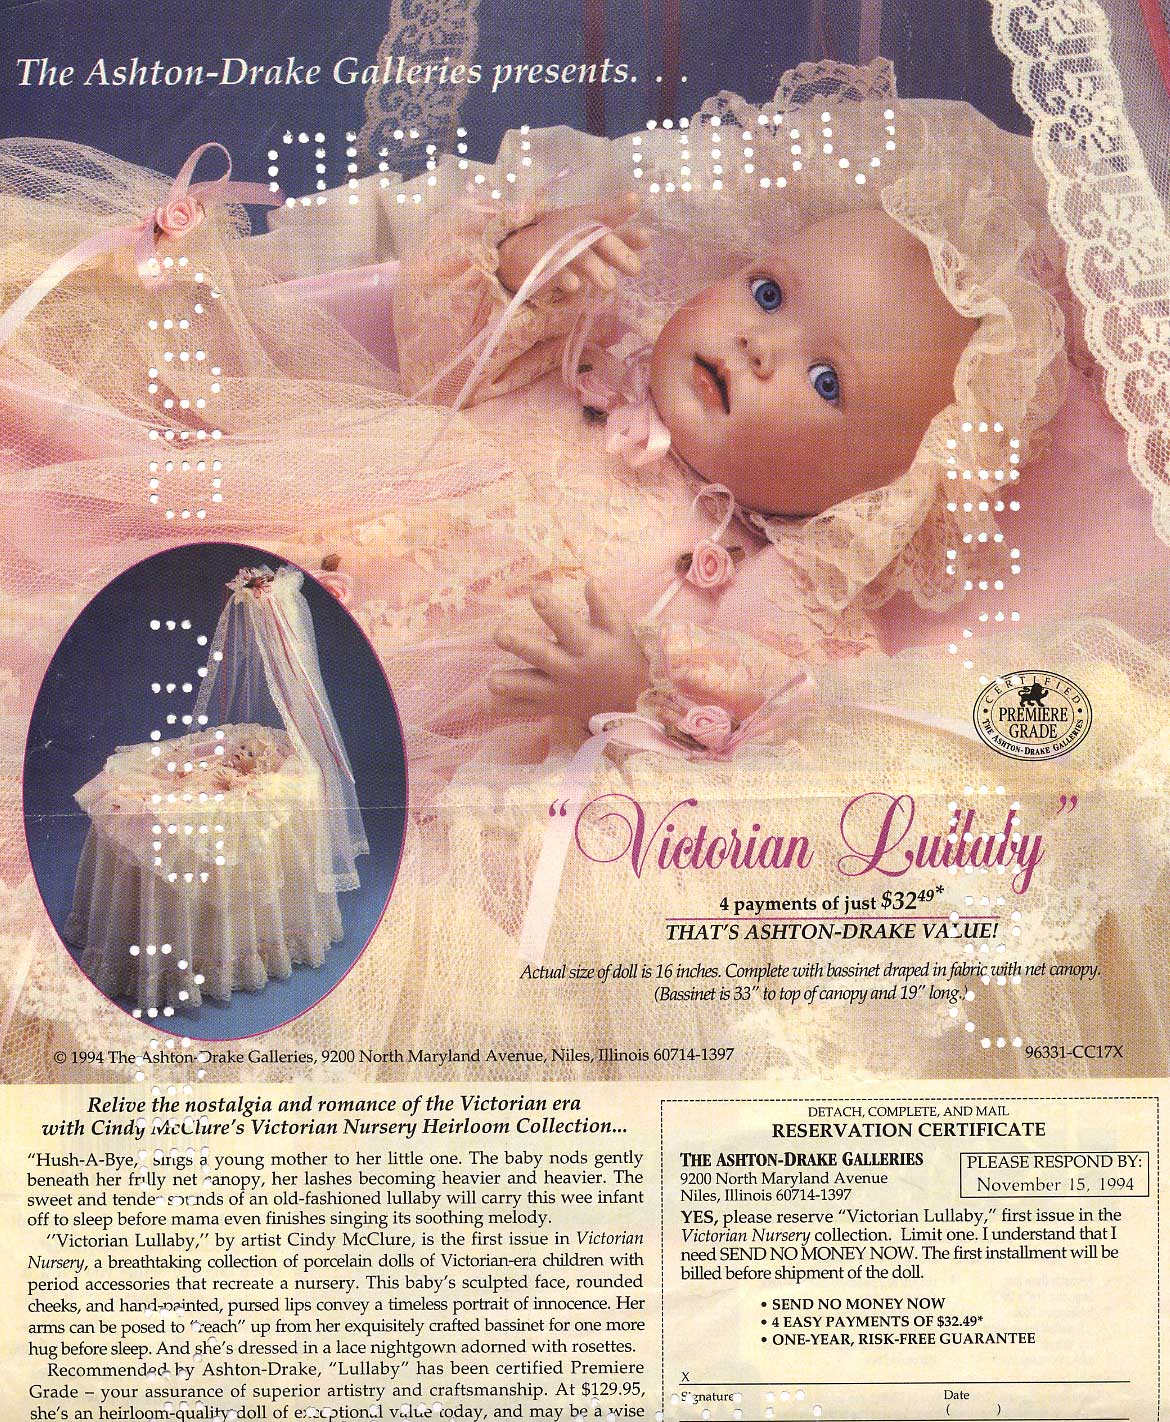 Victorian Lullaby by Cindy McClure 1994